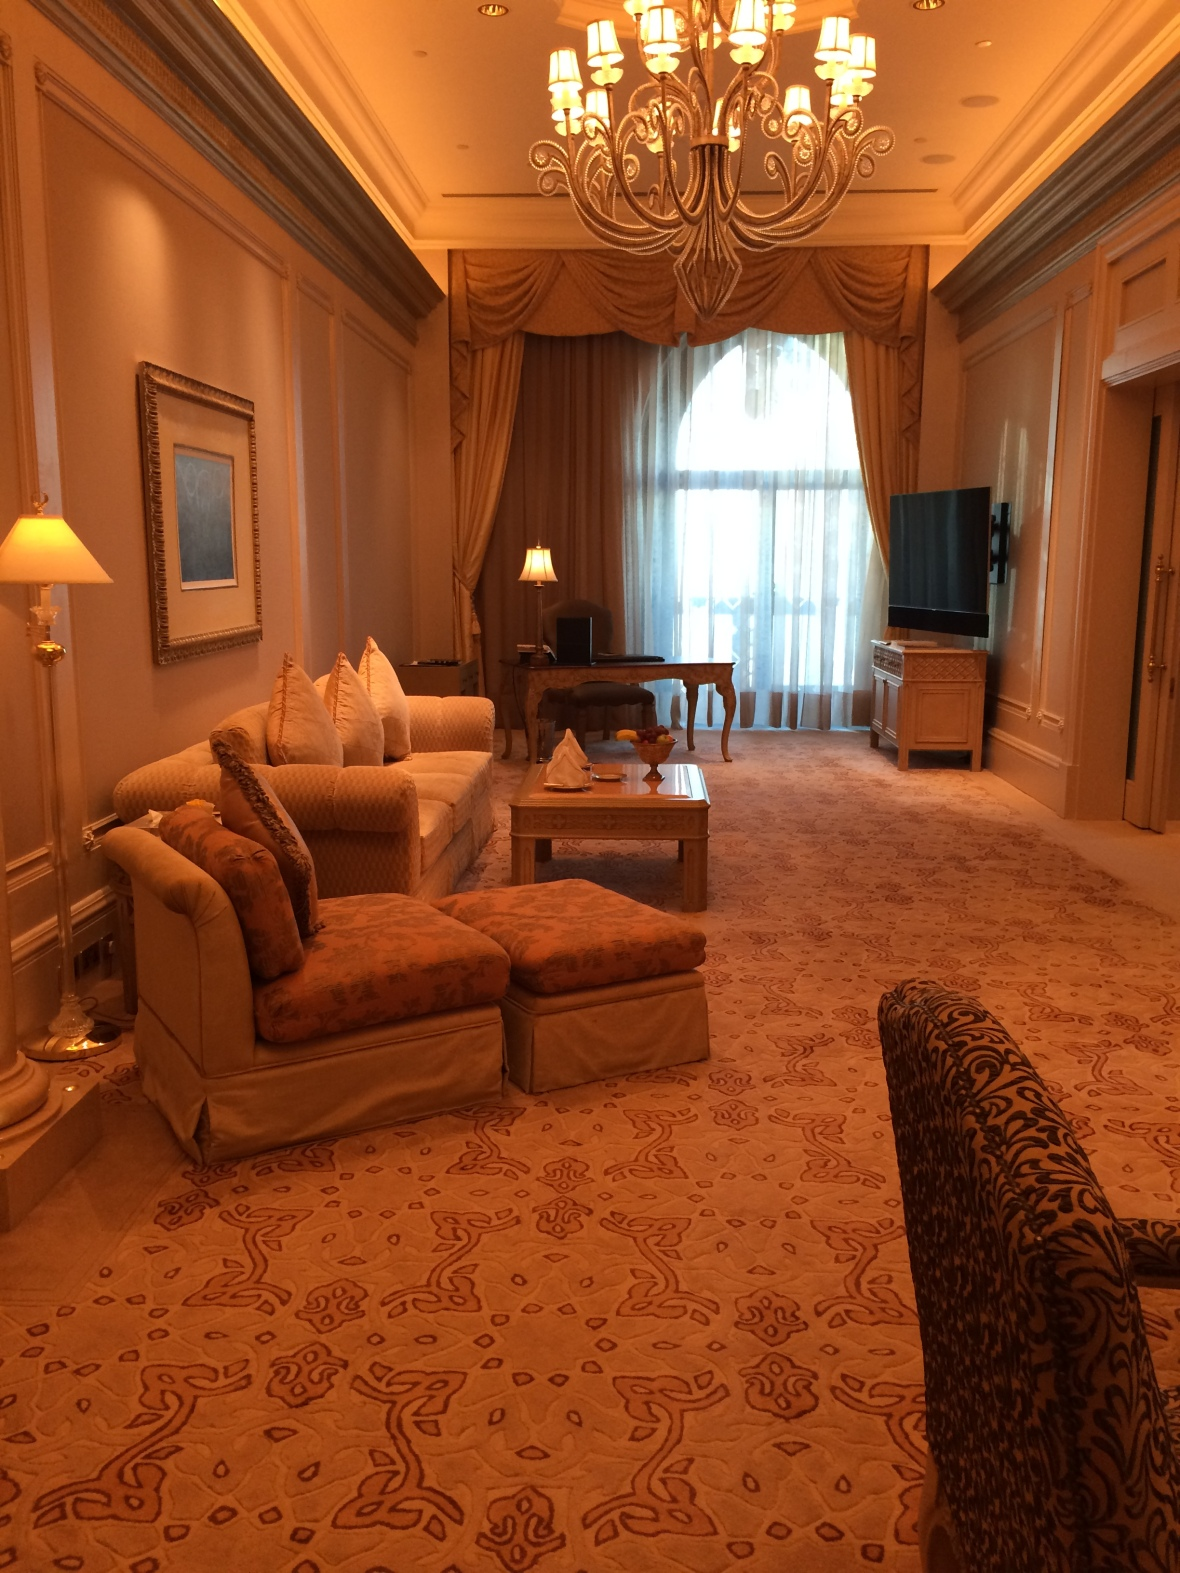 Living Room Area, Suite, Emirates Palace Hotel, Abu Dhabi, UAE